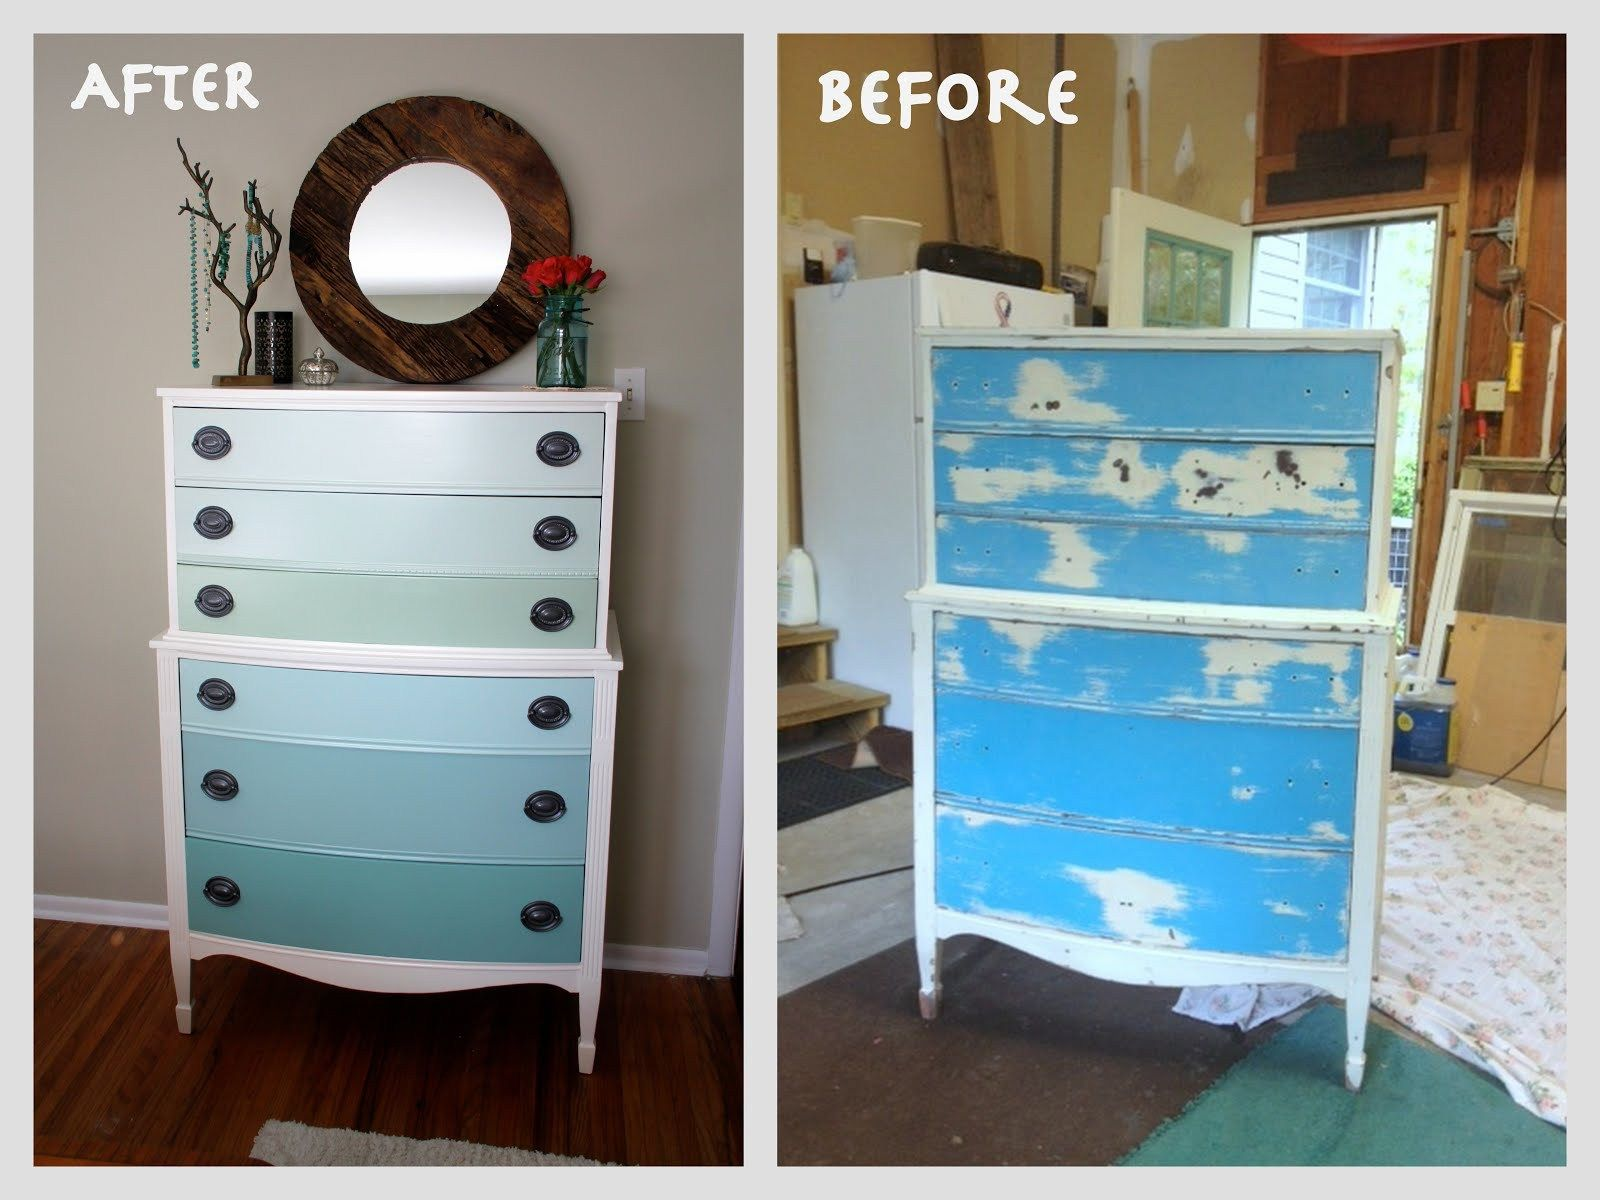 How To Paint Old Wood Furniture Pertaining To Repaint Old Furniture How To  Paint And Decorate Photo